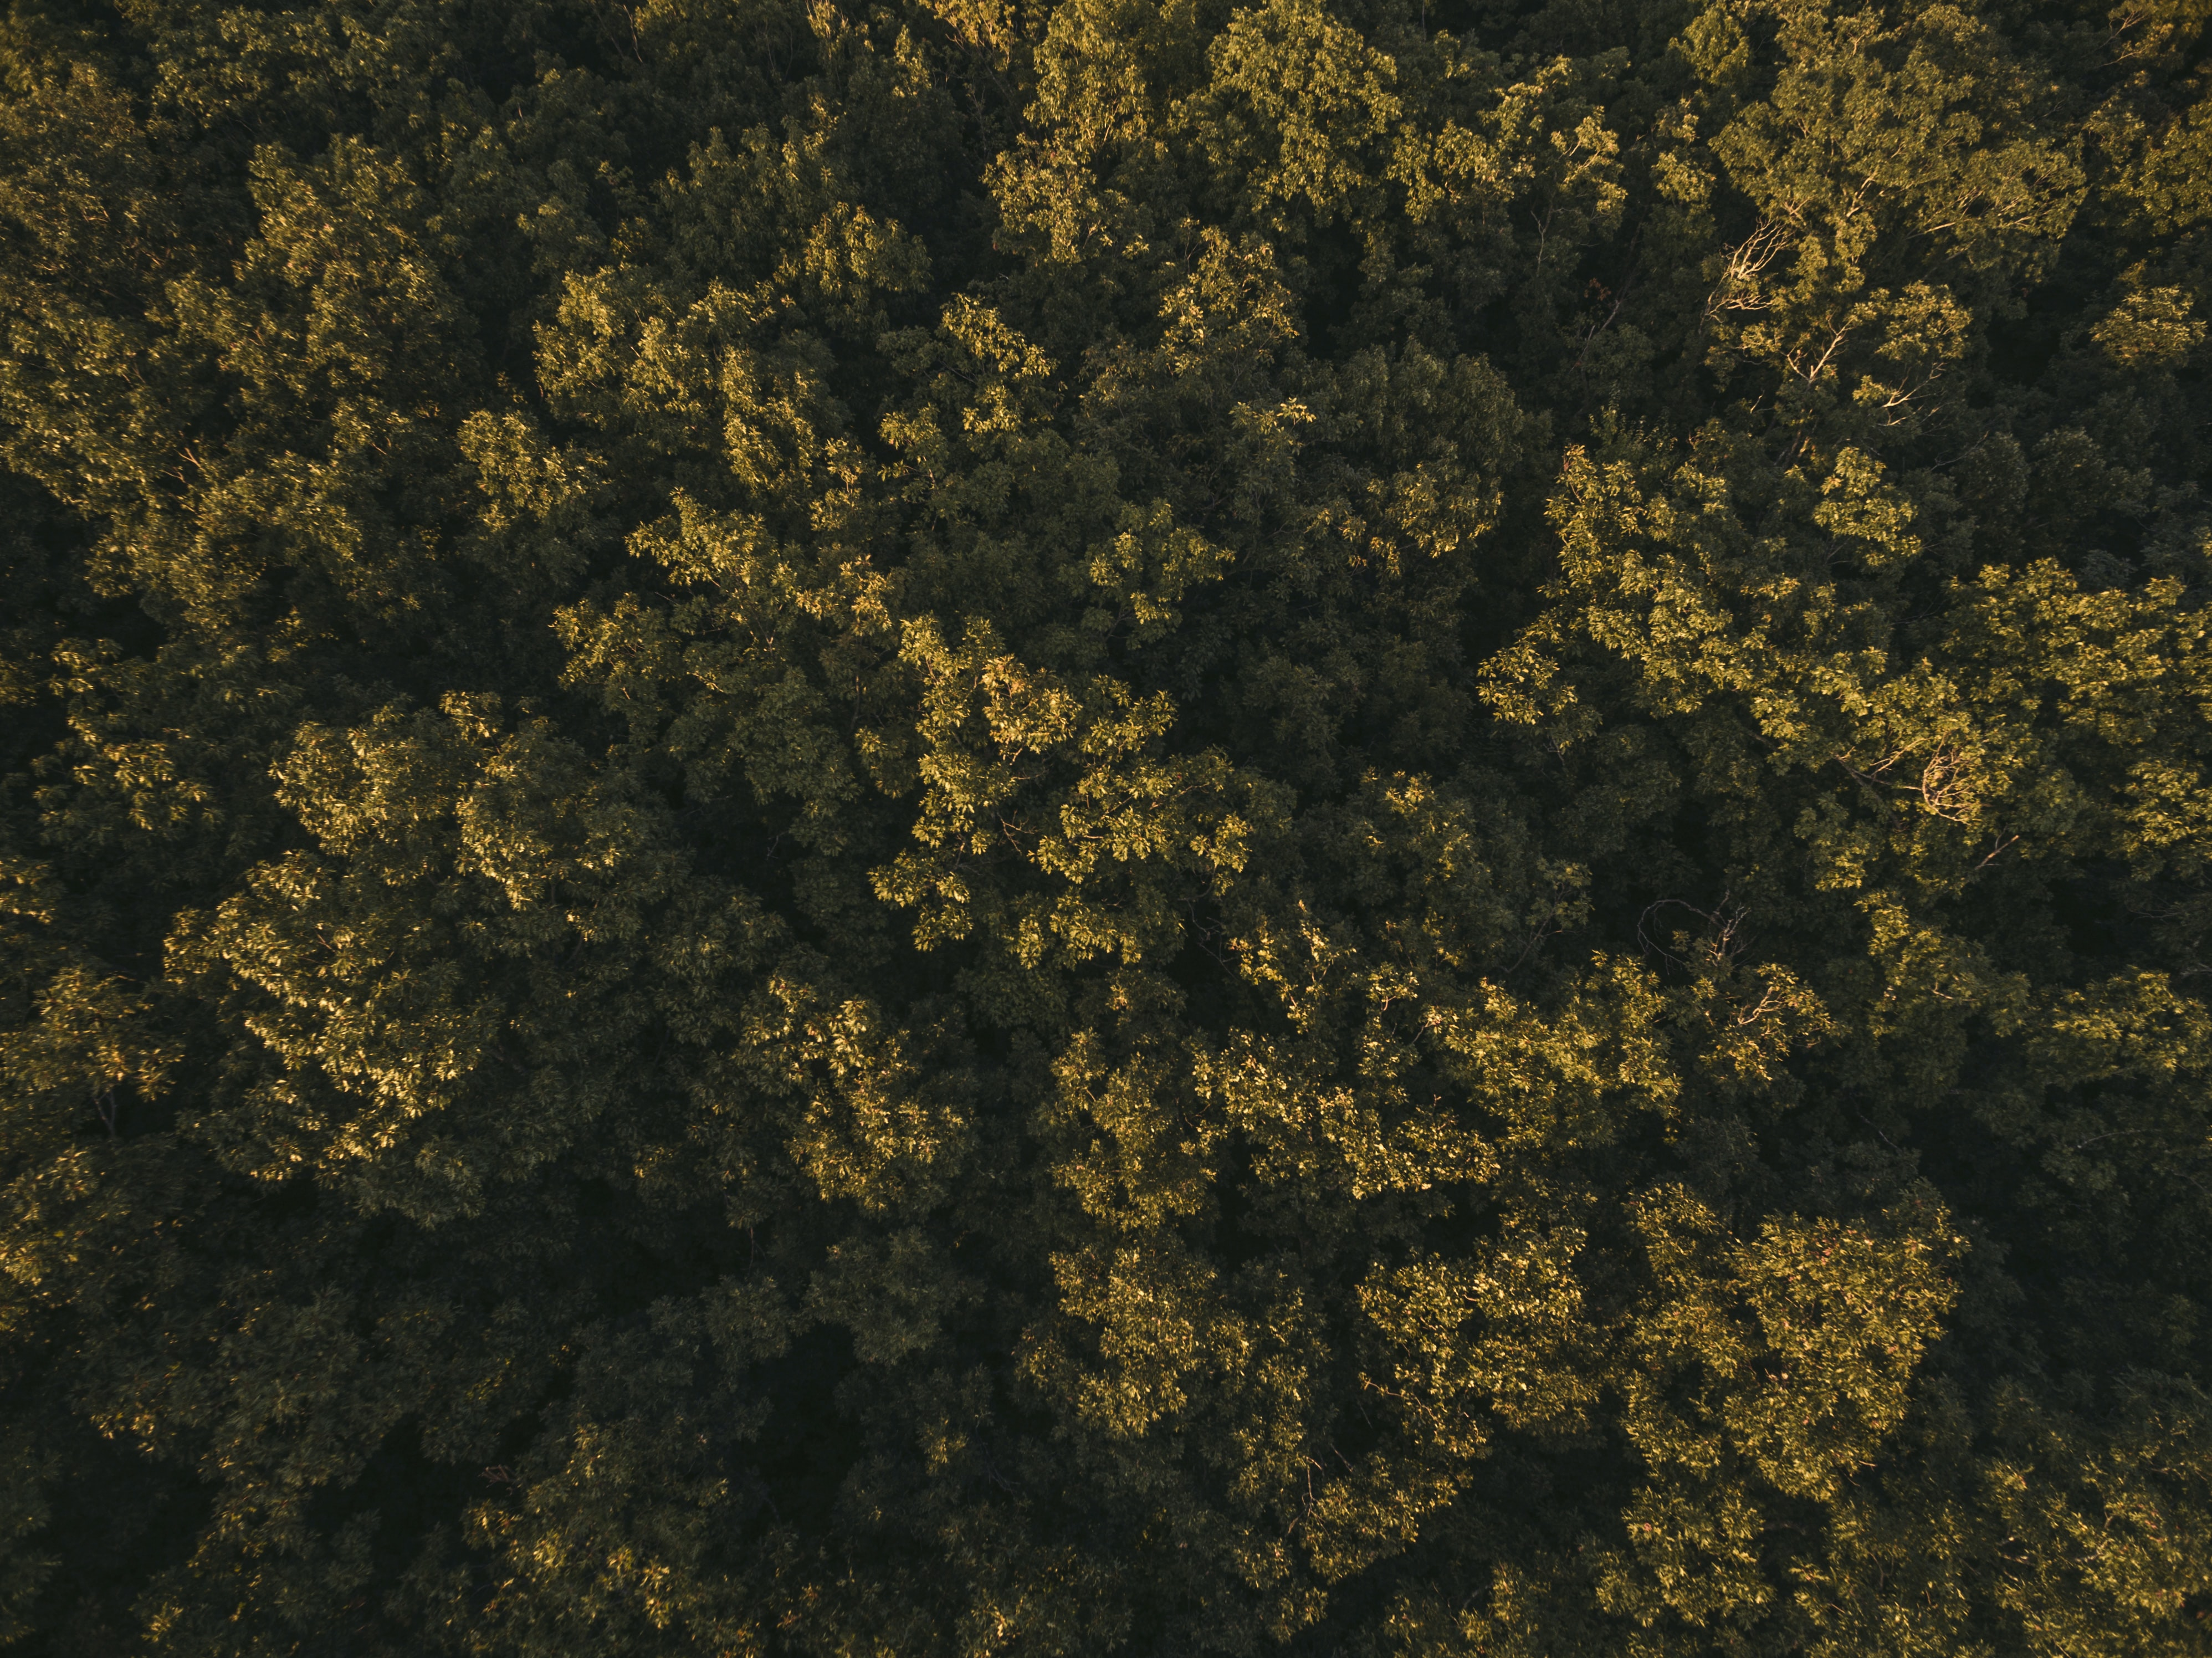 A drone shot of sunlit treetops in a forest in Arkansas